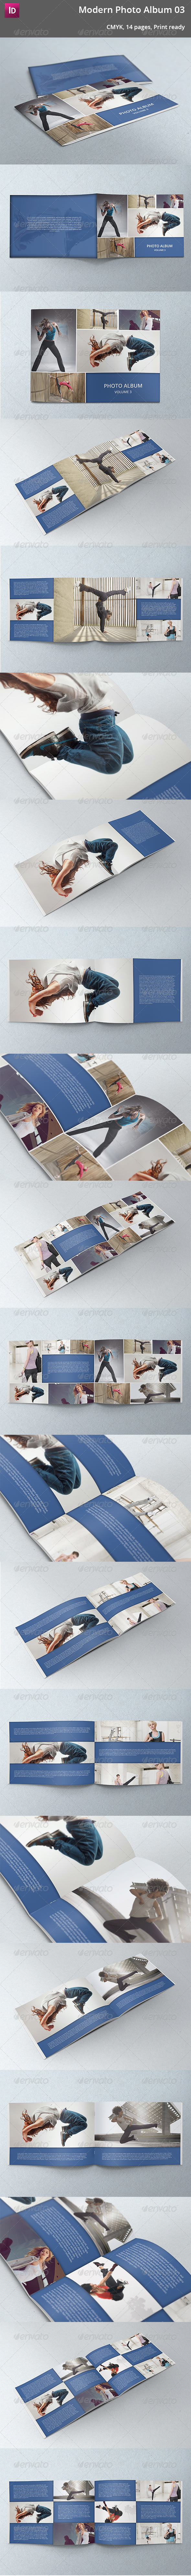 Modern Photo Album 03 - Photo Albums Print Templates